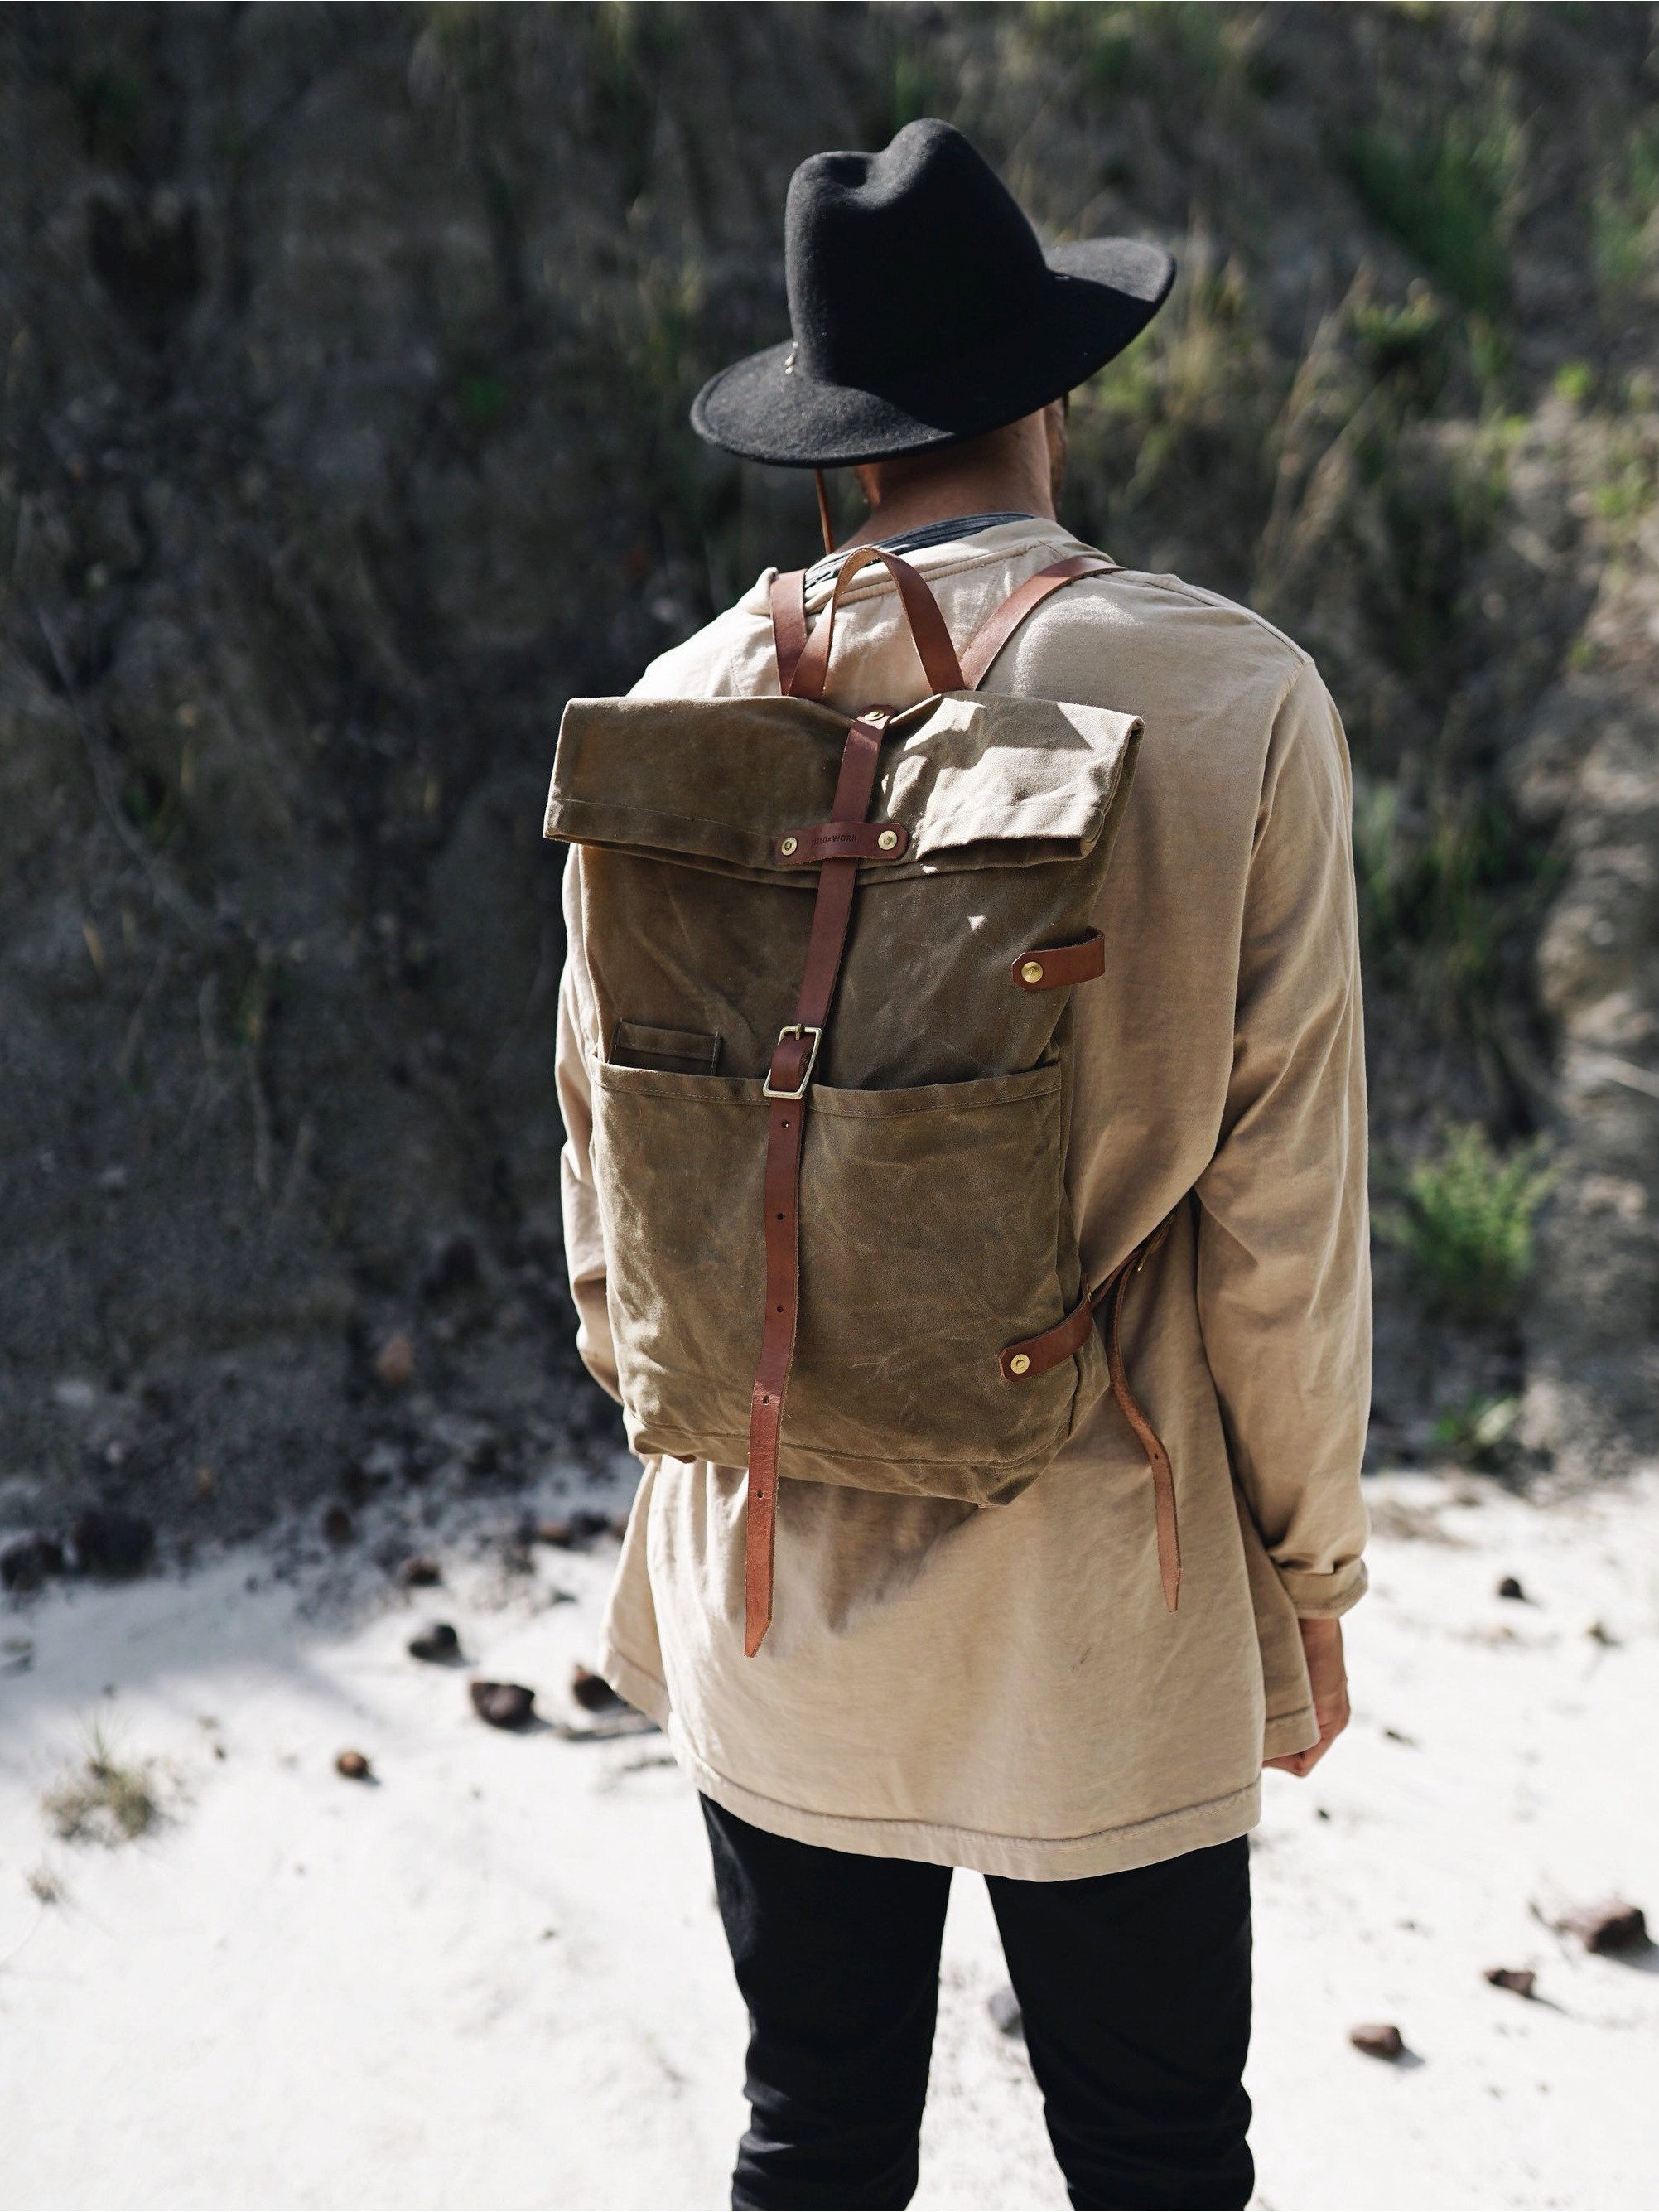 Hudson Bay Backpack - Fieldwork Co Waxed Canvas and Leather Hand Made Goods